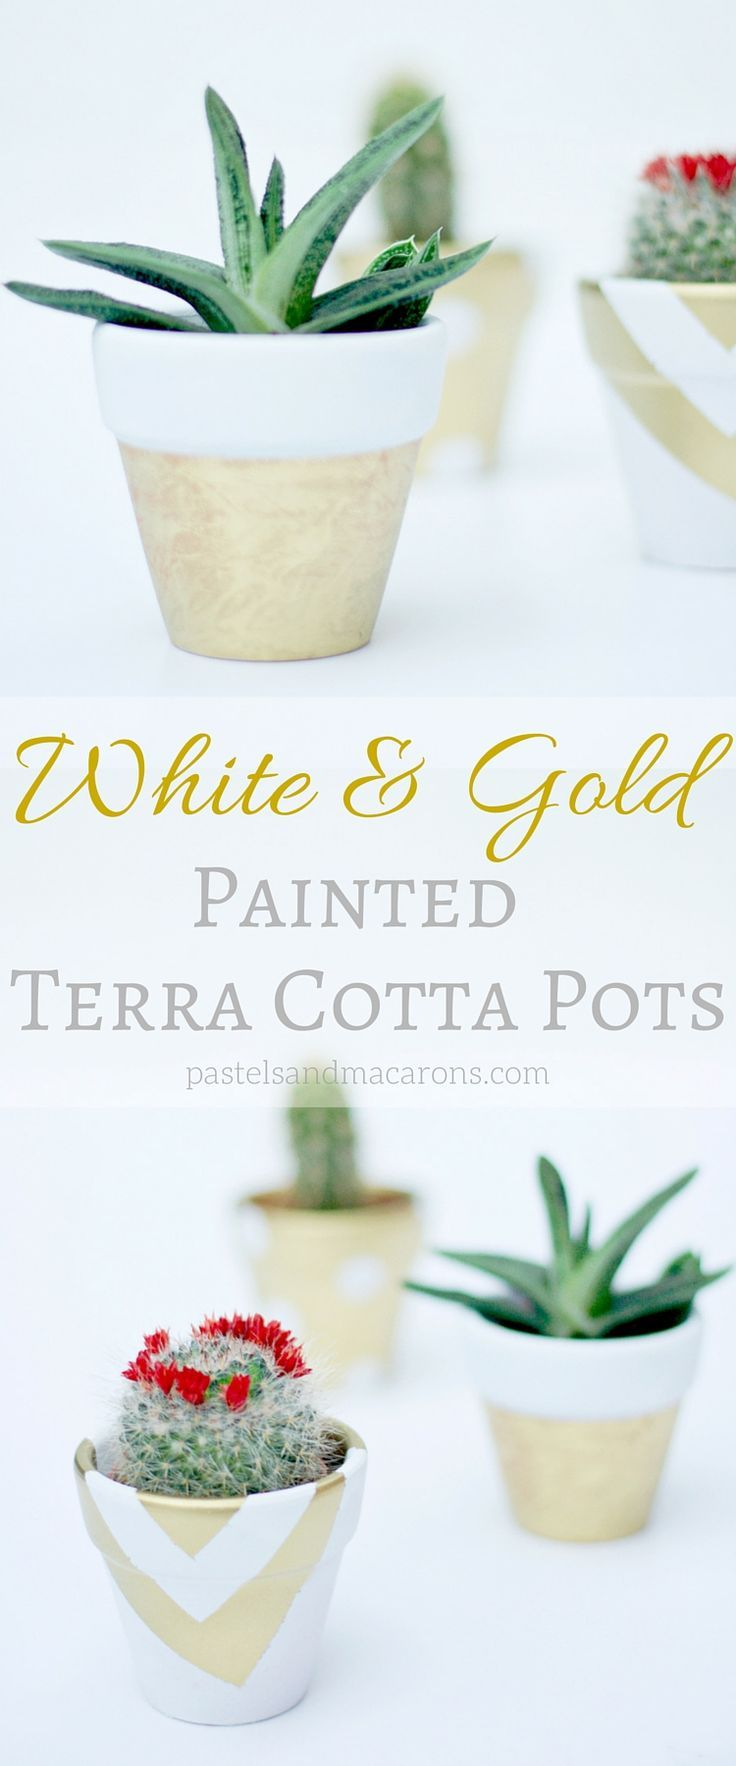 I Love These White And Gold Painted Terra Cotta Pots They Are Super Easy And Are So Cute Terra Cotta Pot Crafts Painted Terra Cotta Pots Terracotta Pots